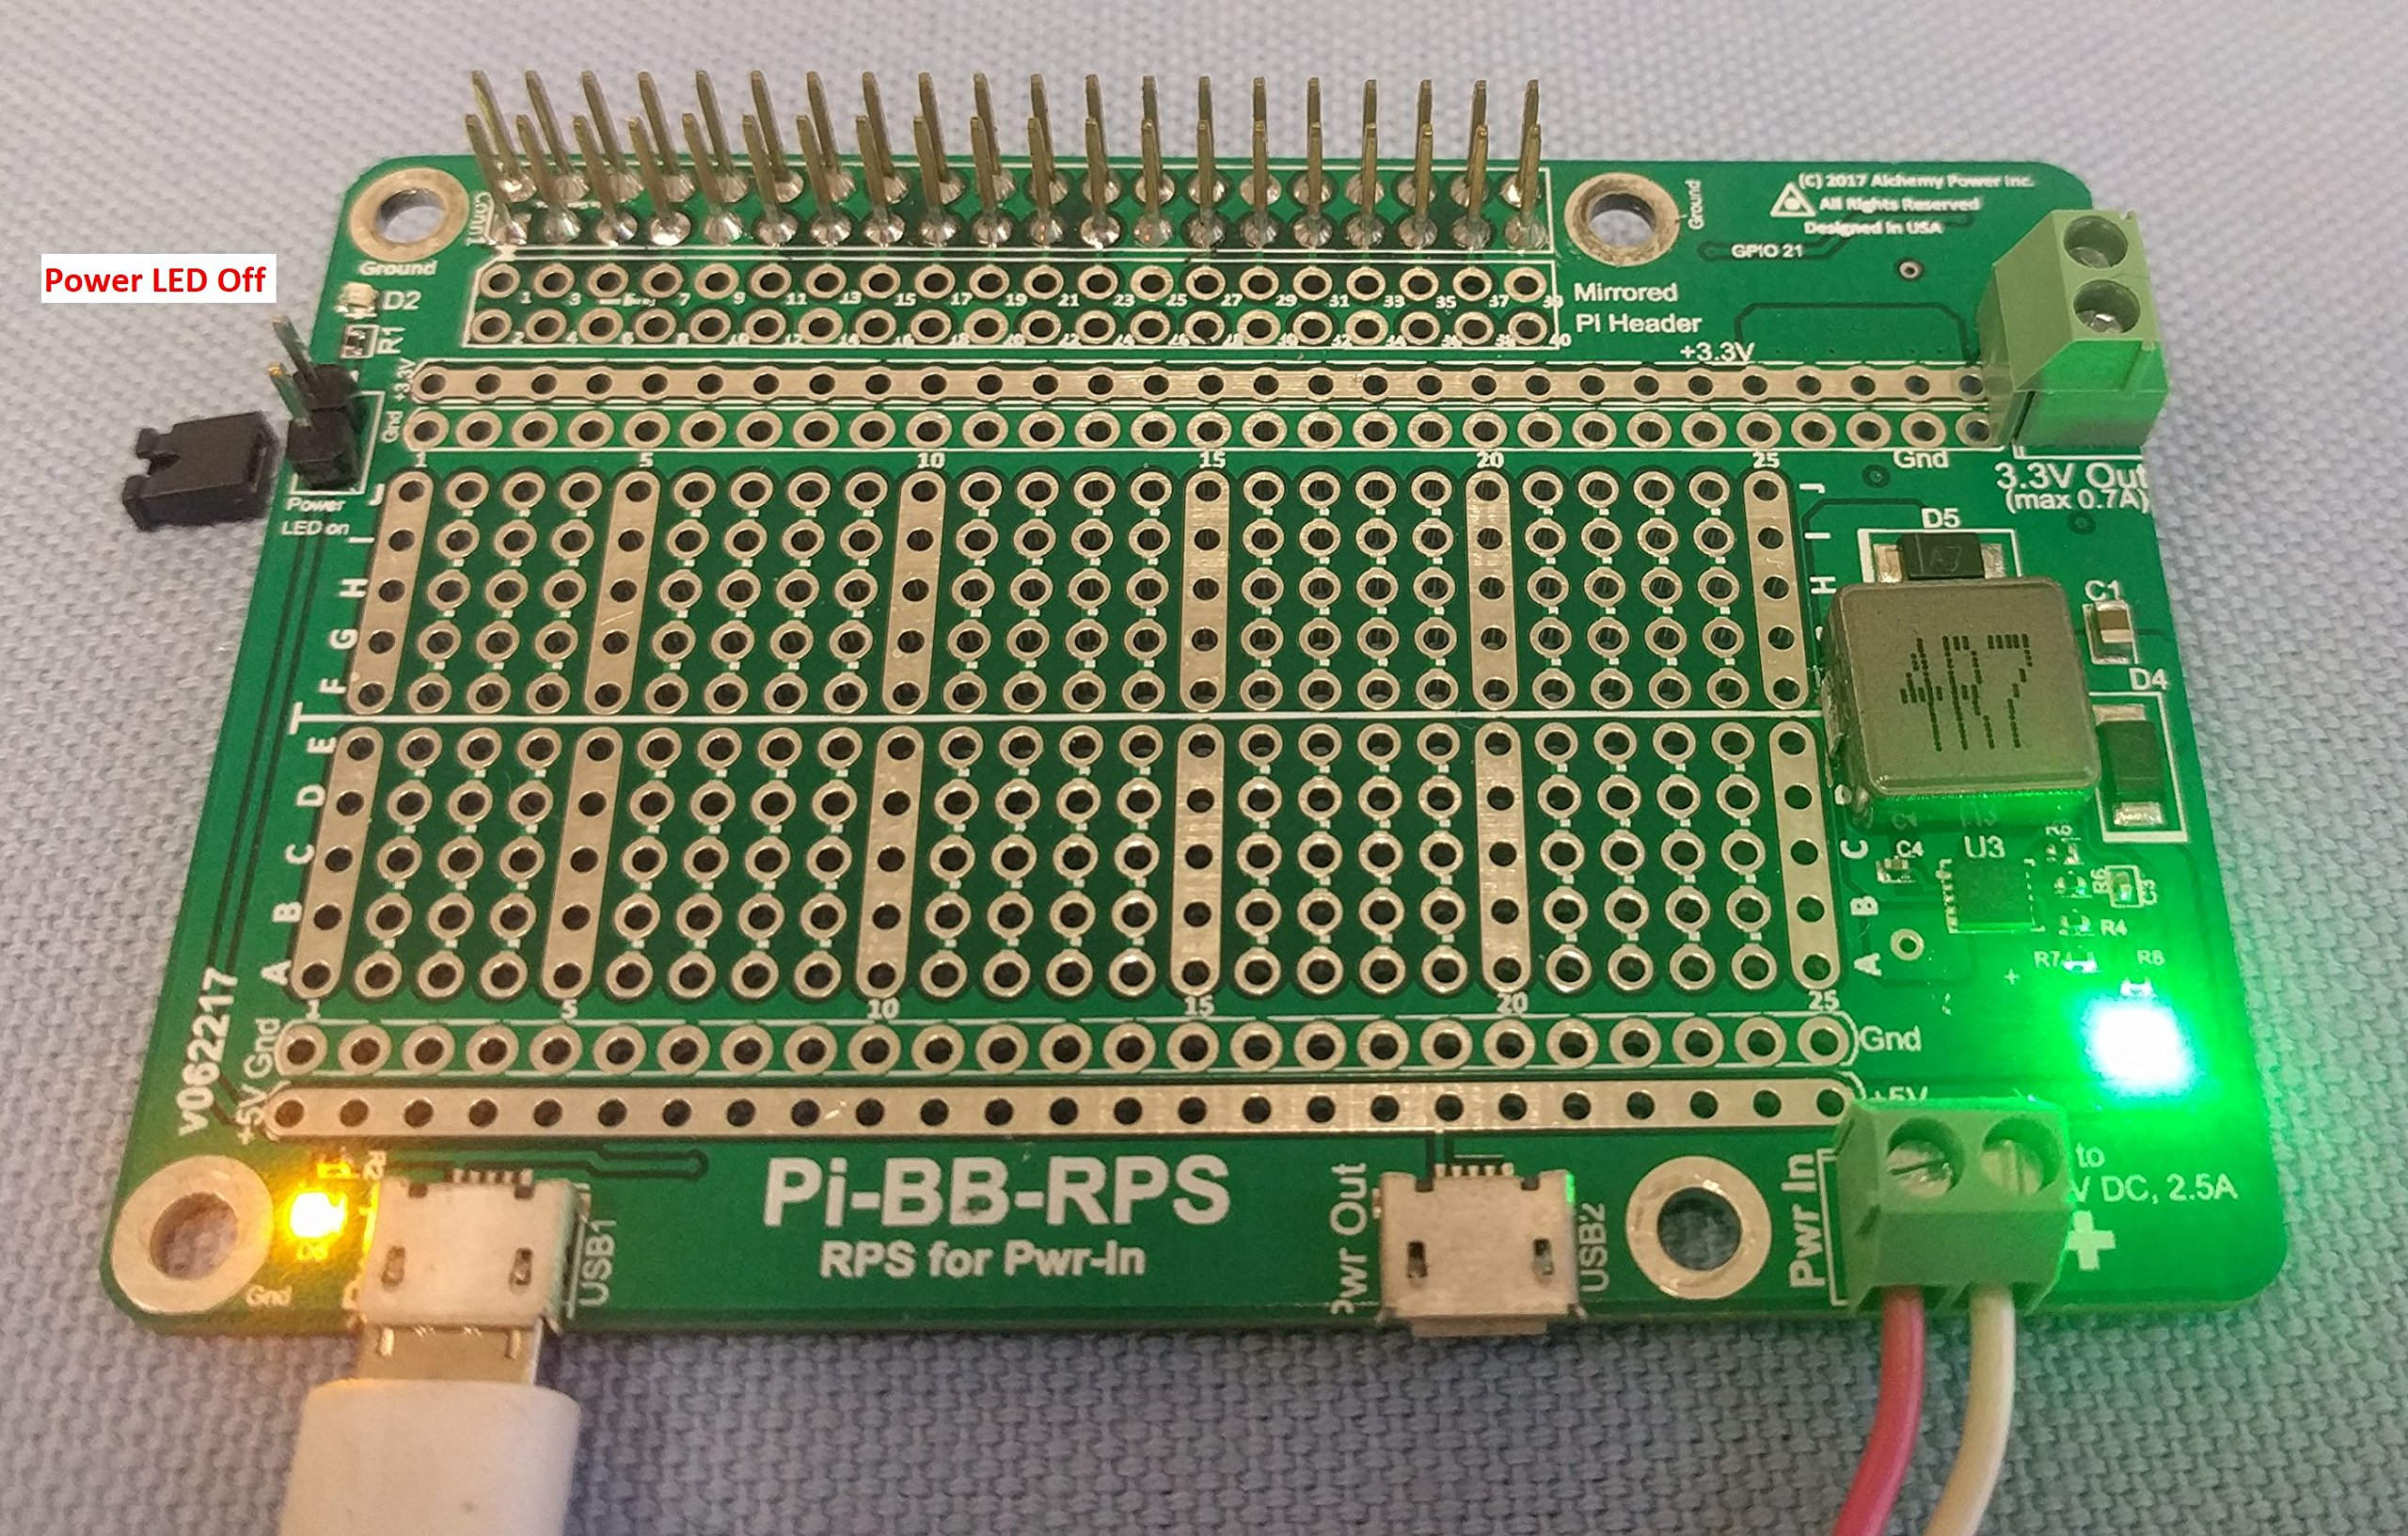 Alchemy Power Inc. Pi-BB-RPS Powered Breadboard with Redundant Power Supply (RPS) and more... by Alchemy Power Inc. TM (Image #5)